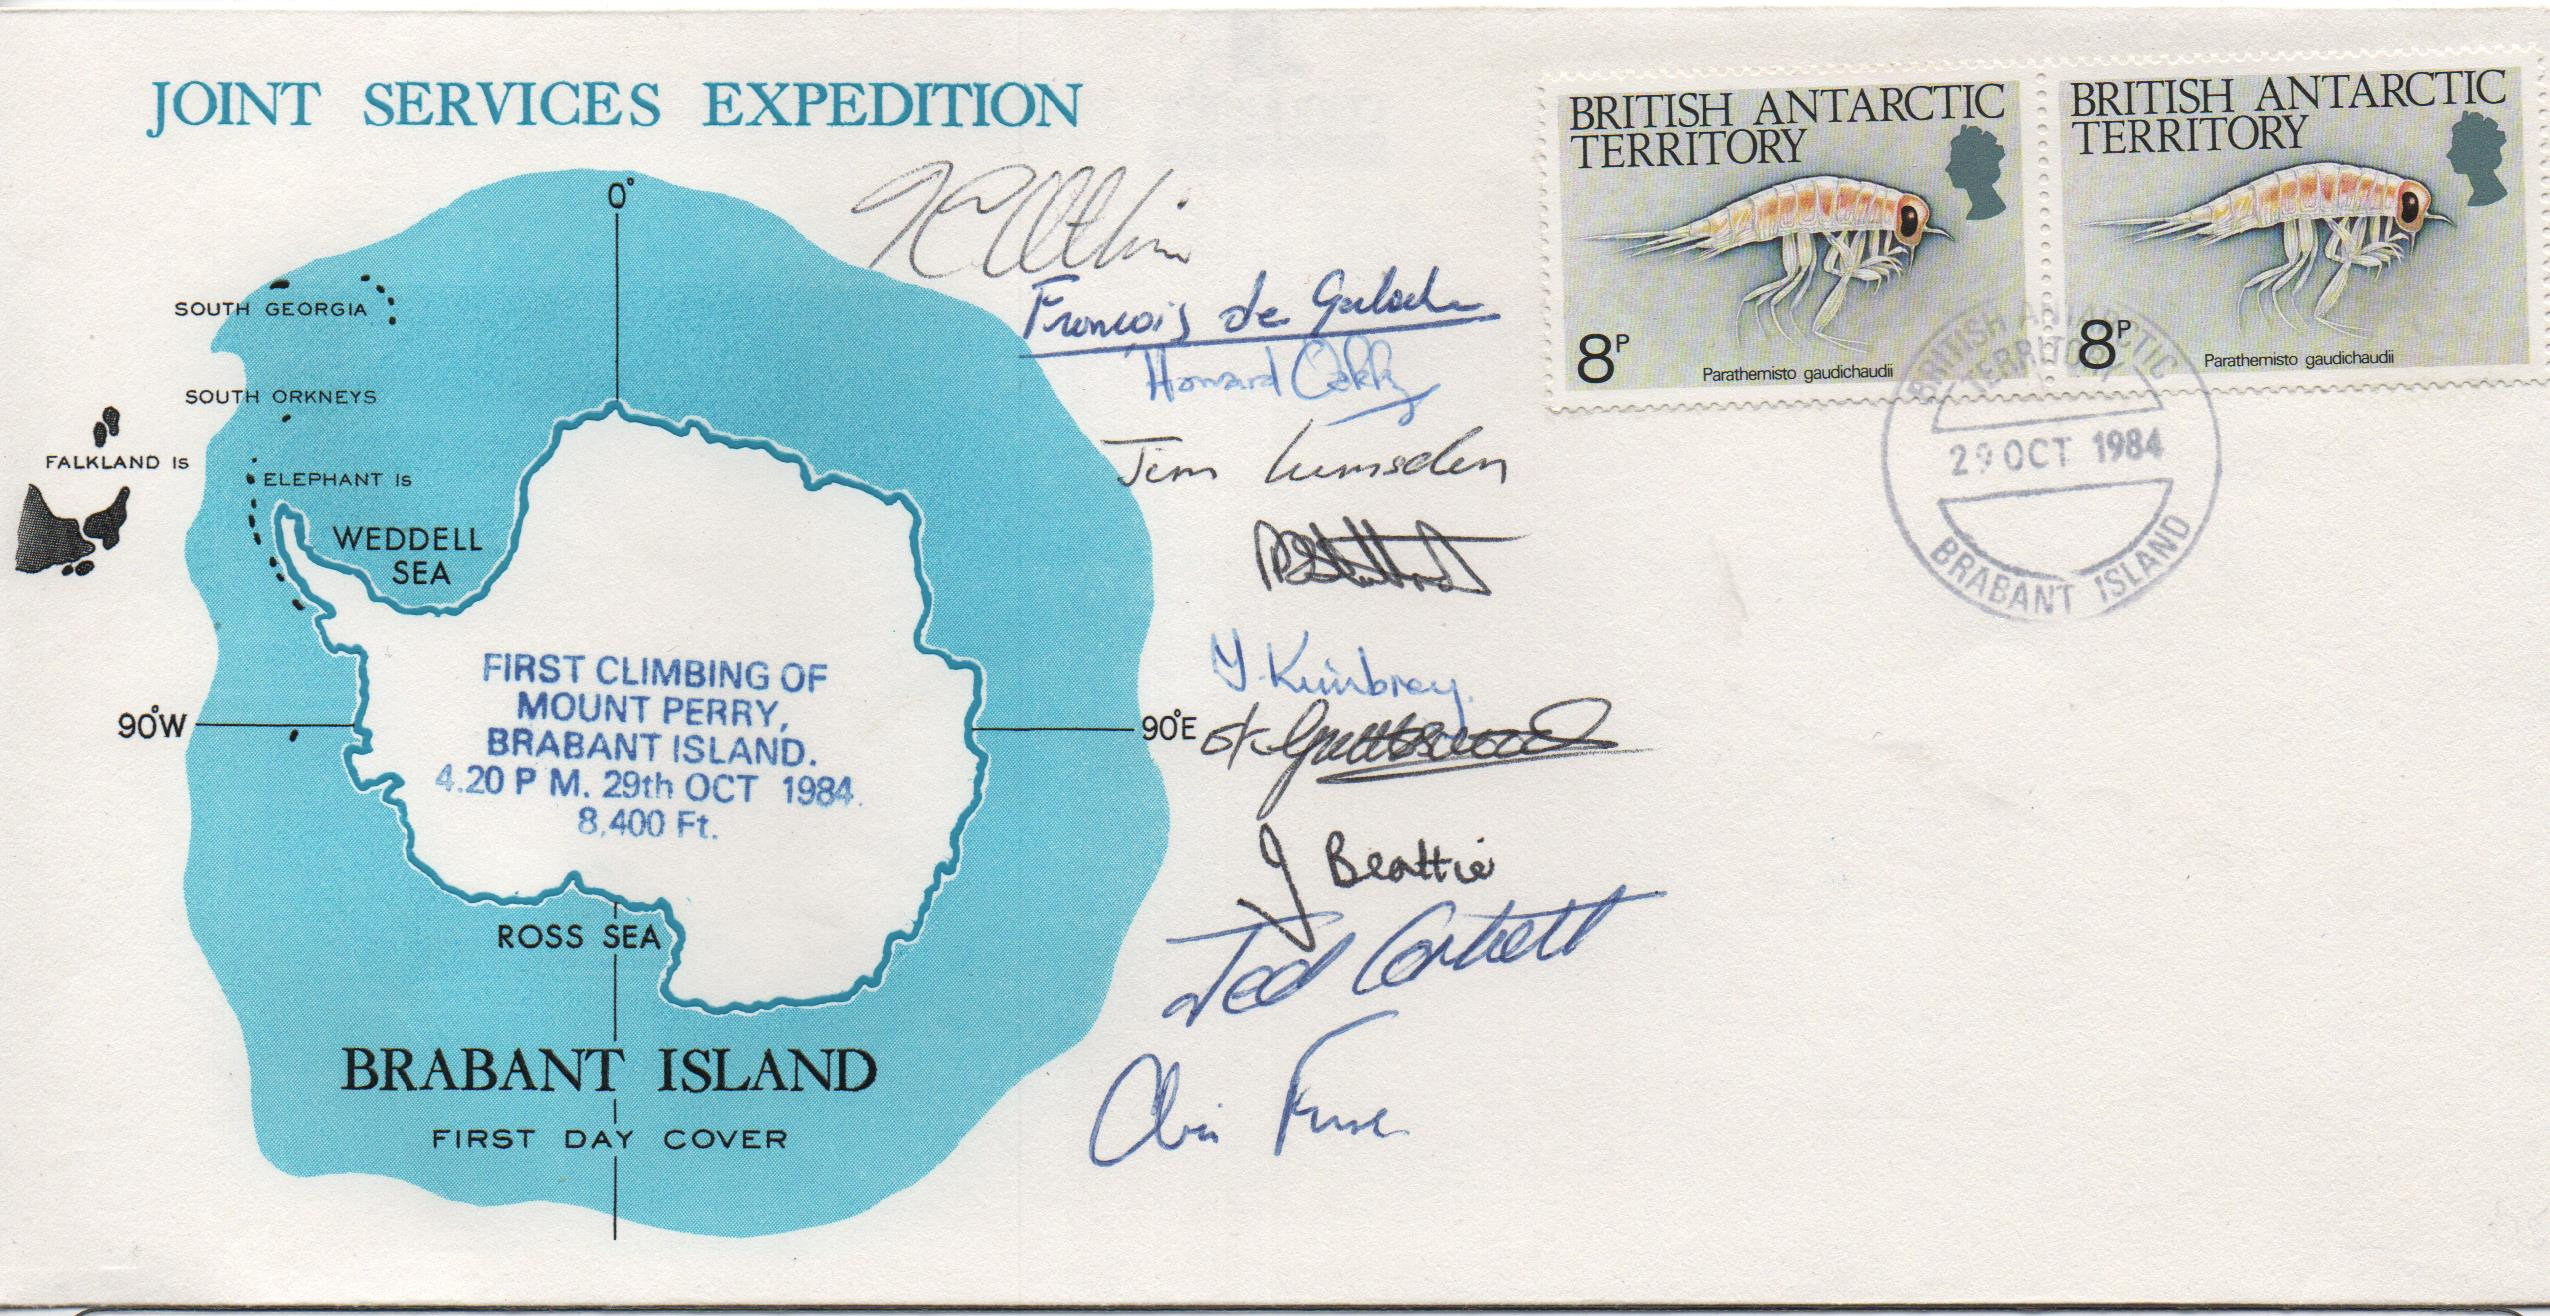 1984 B.A.T Joint Services Expedition on Brabant Island multi-signed cover